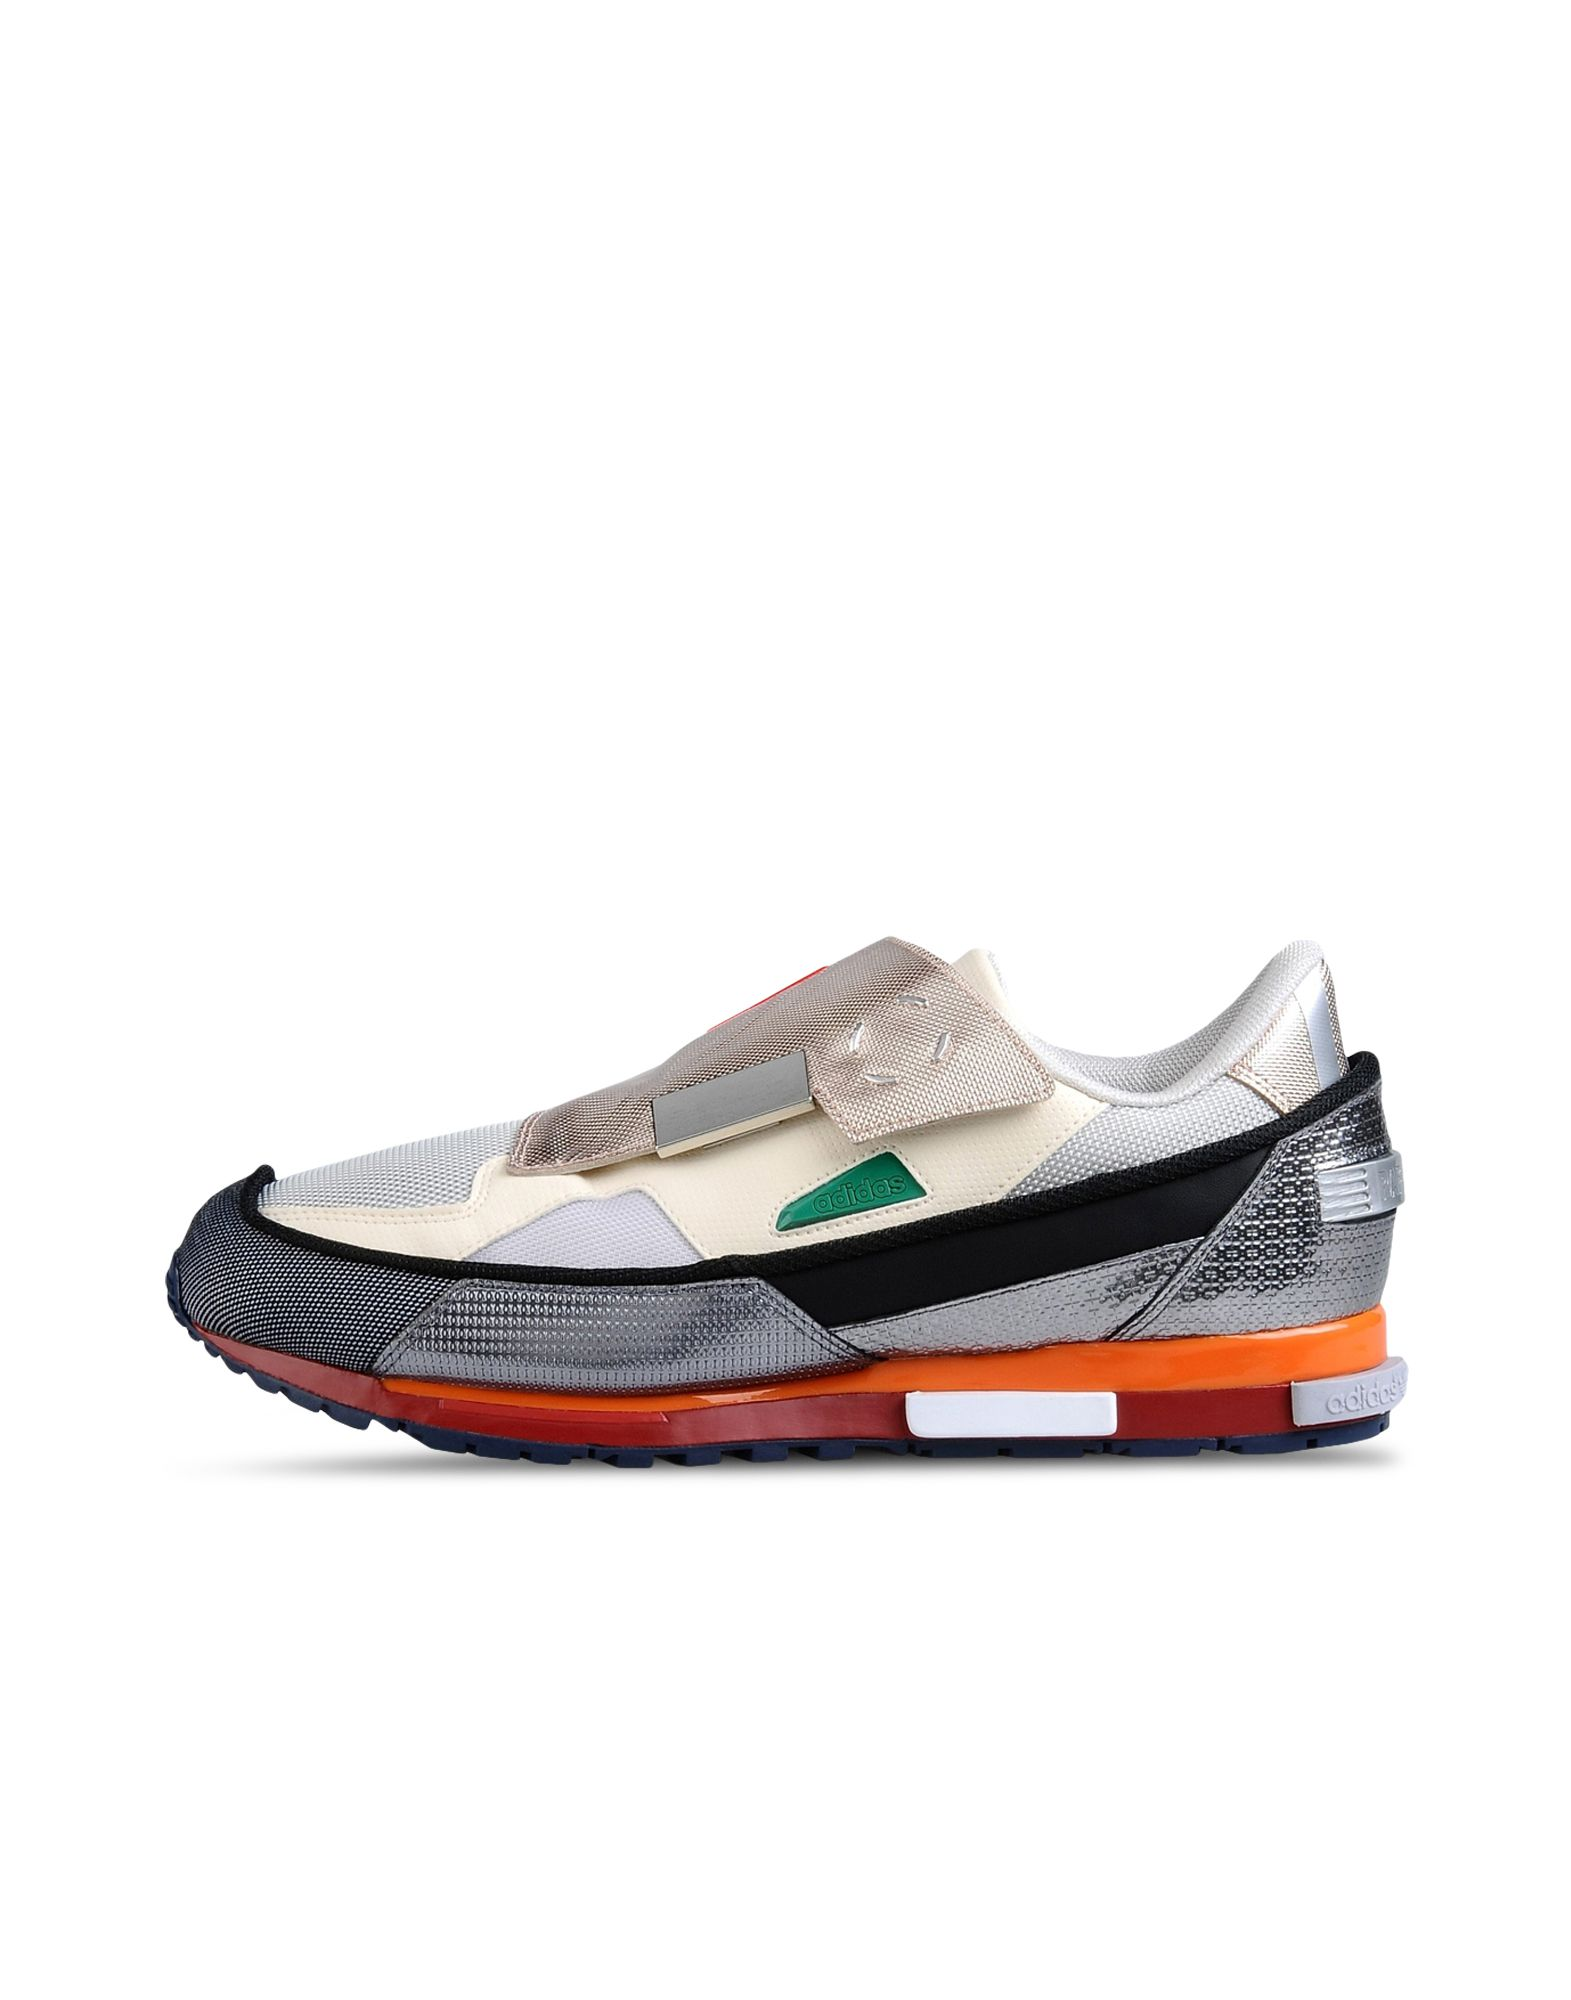 Raf Simons Rising Star 2 SHOES unisex Y-3 adidas